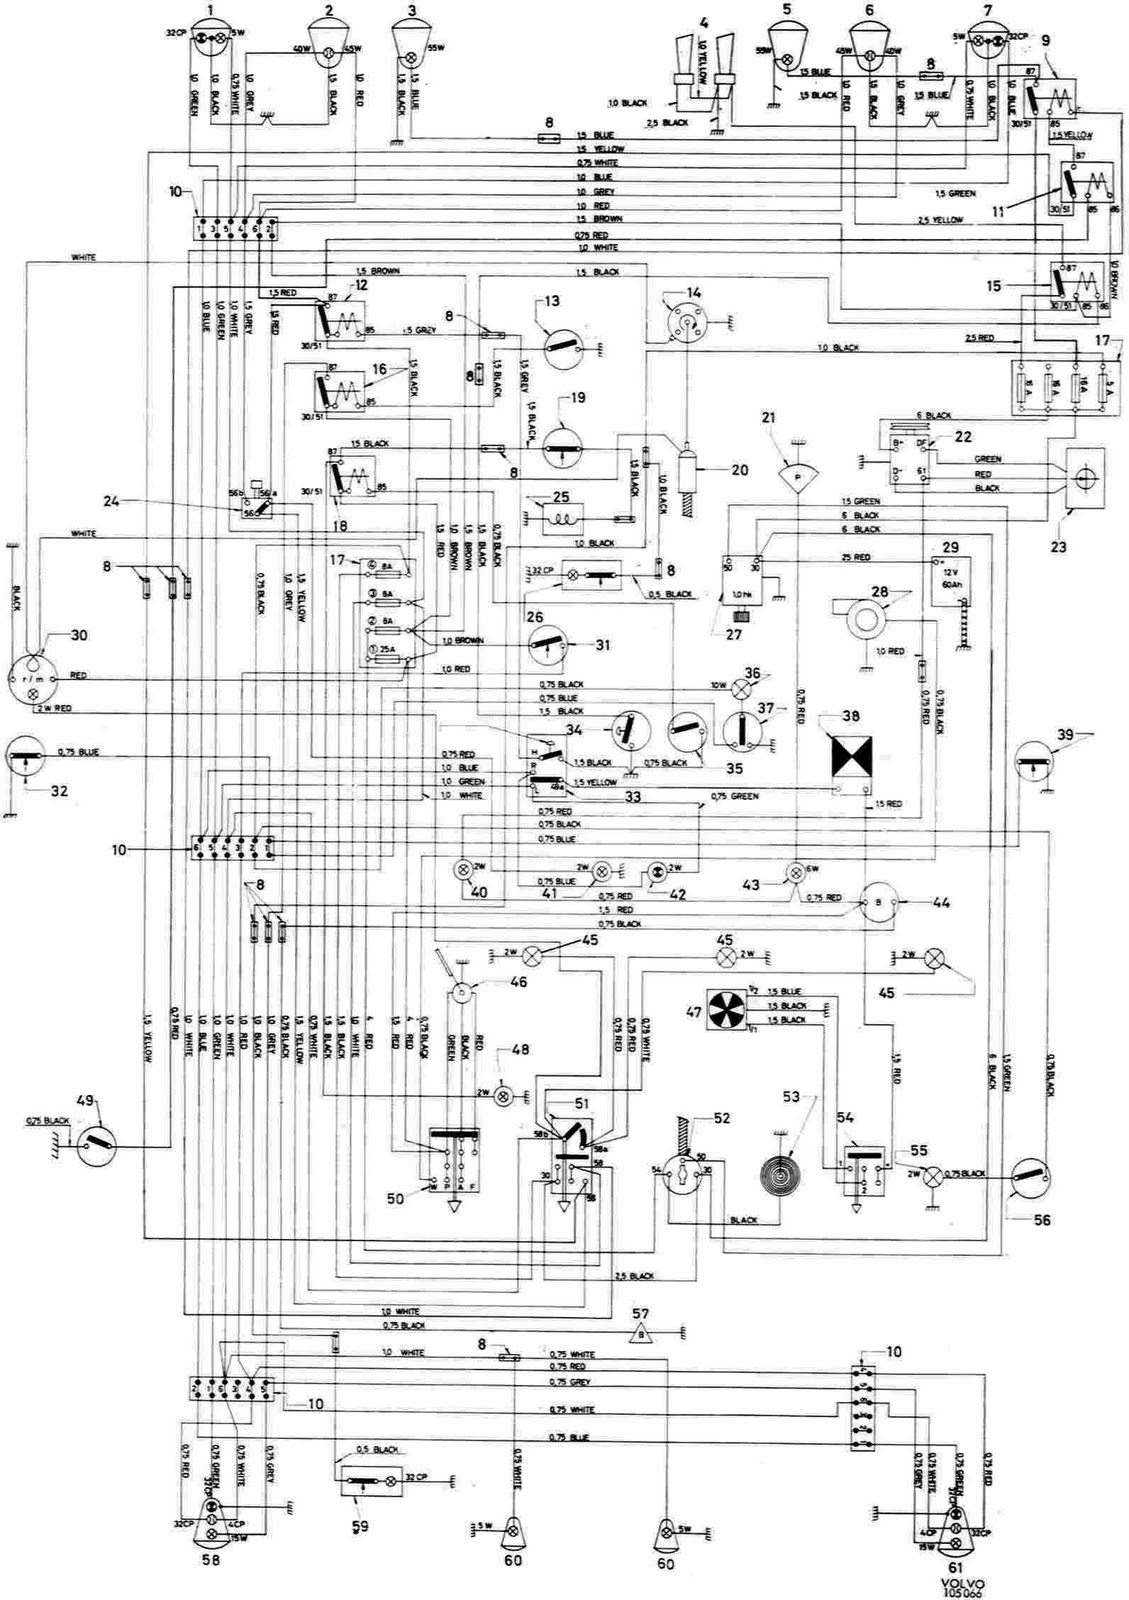 Fuse Box Diagram For 2006 Saab 9 3. Saab. Wiring Diagram